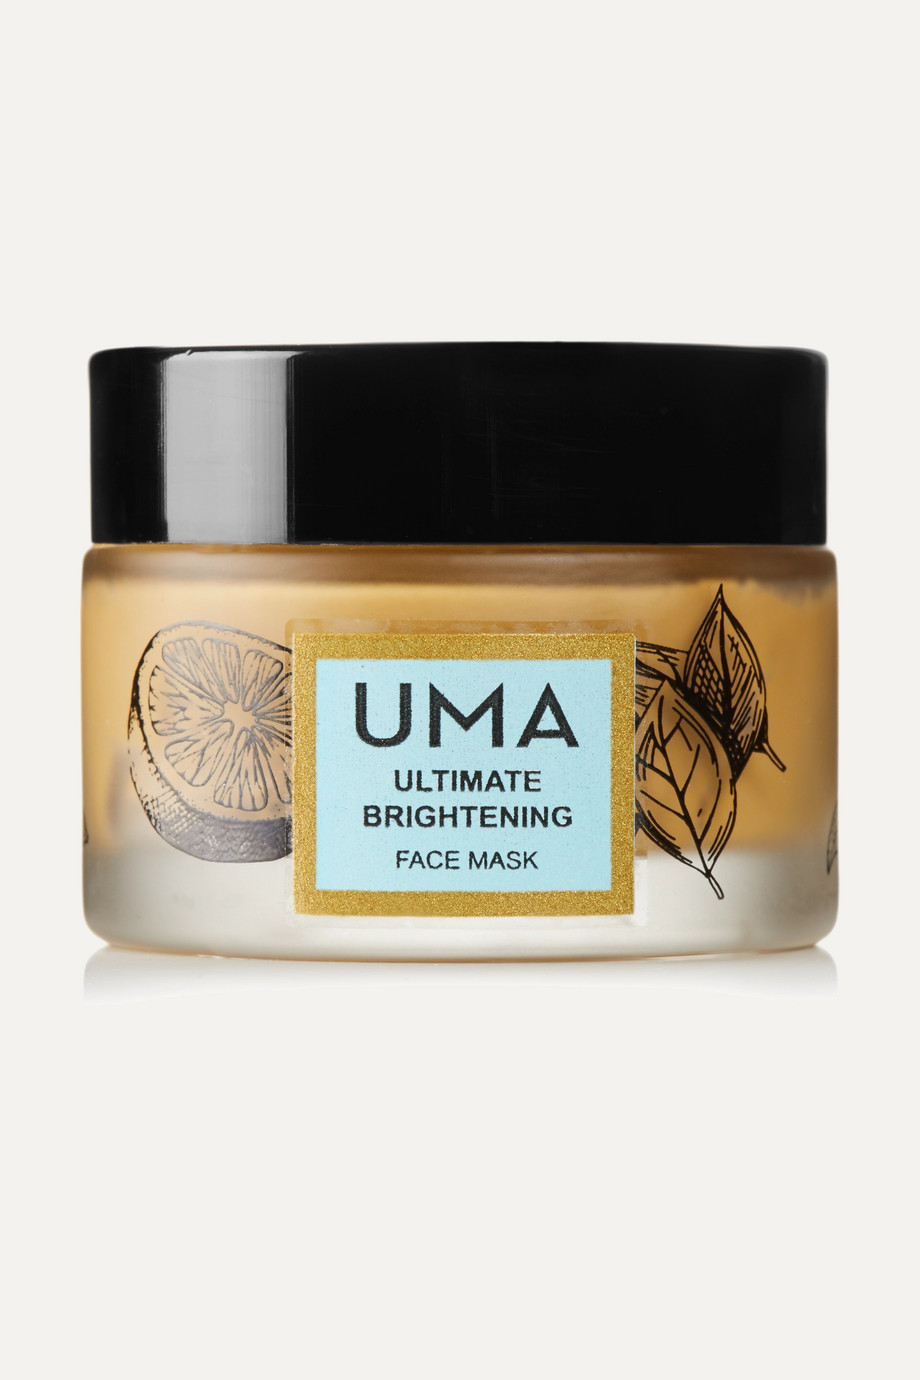 UMA Oils + NET SUSTAIN Ultimate Brightening Face Mask, 50ml